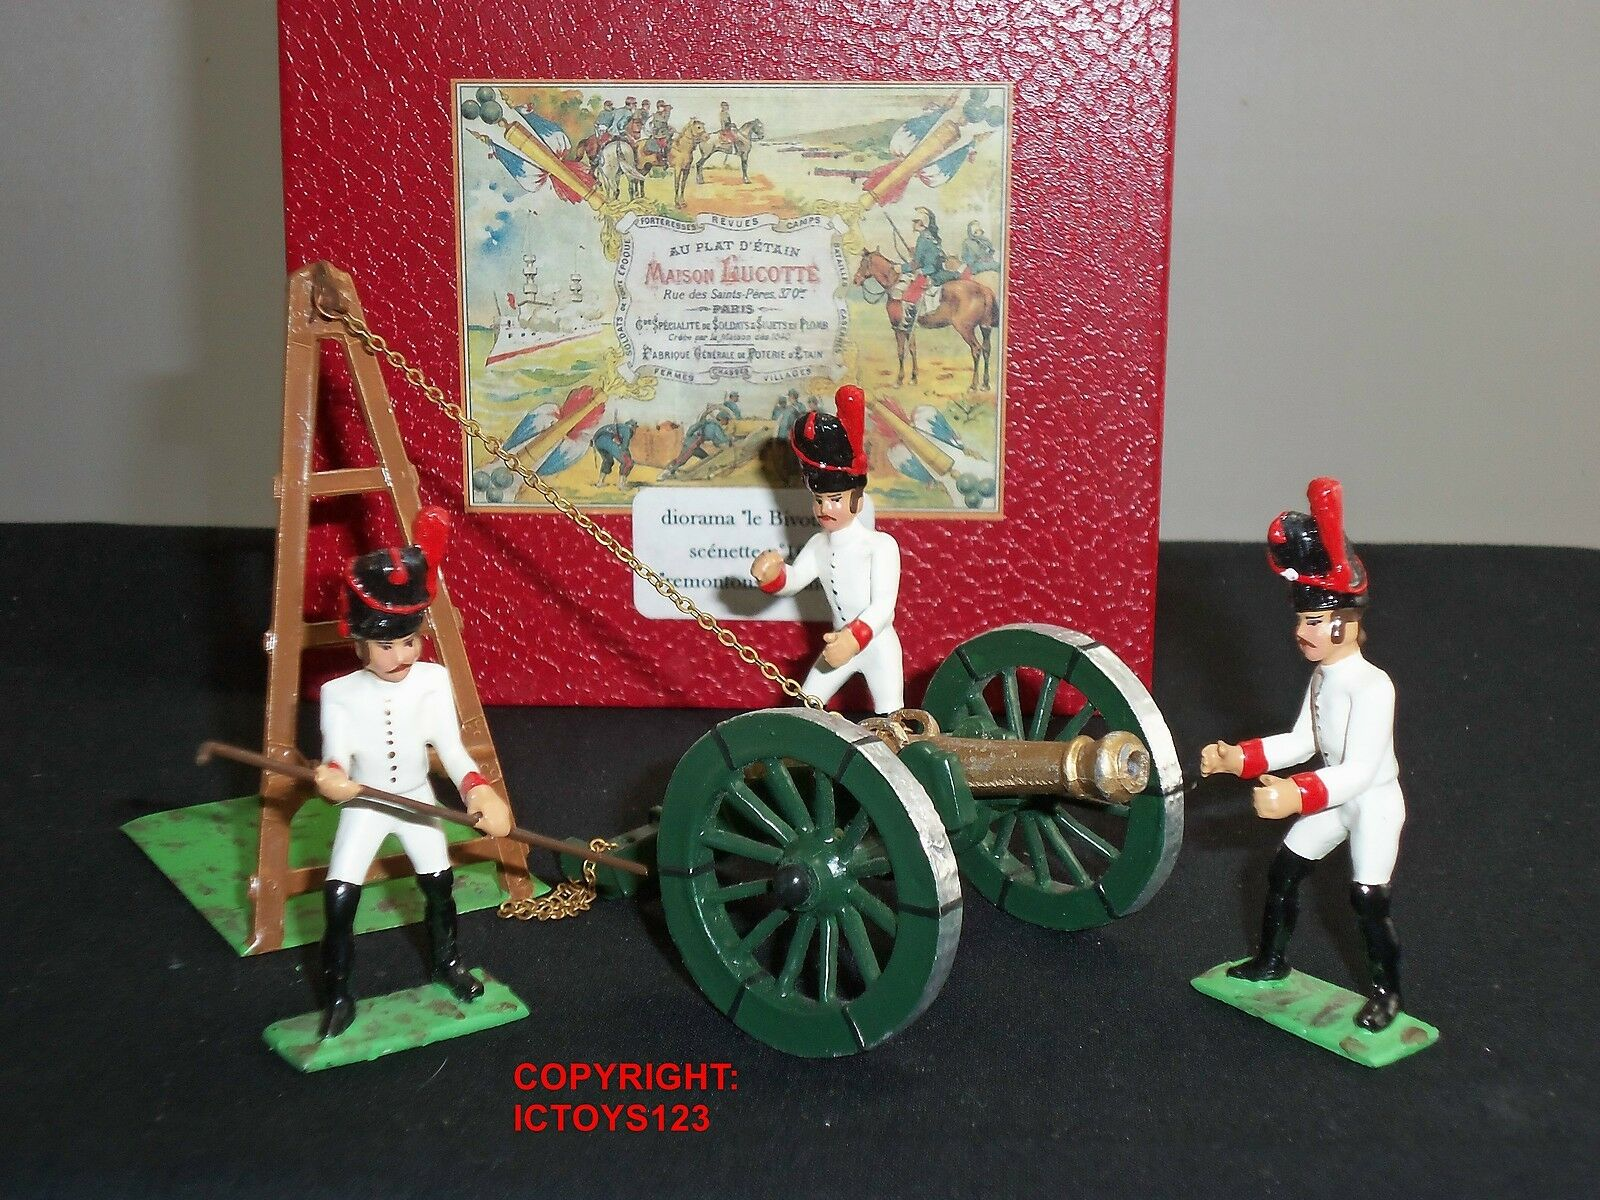 MAISON LUCOTTE CBG MIGNOT FRENCH IMPERIAL GUARDS REMOUNTING CANNON FIGURE SET